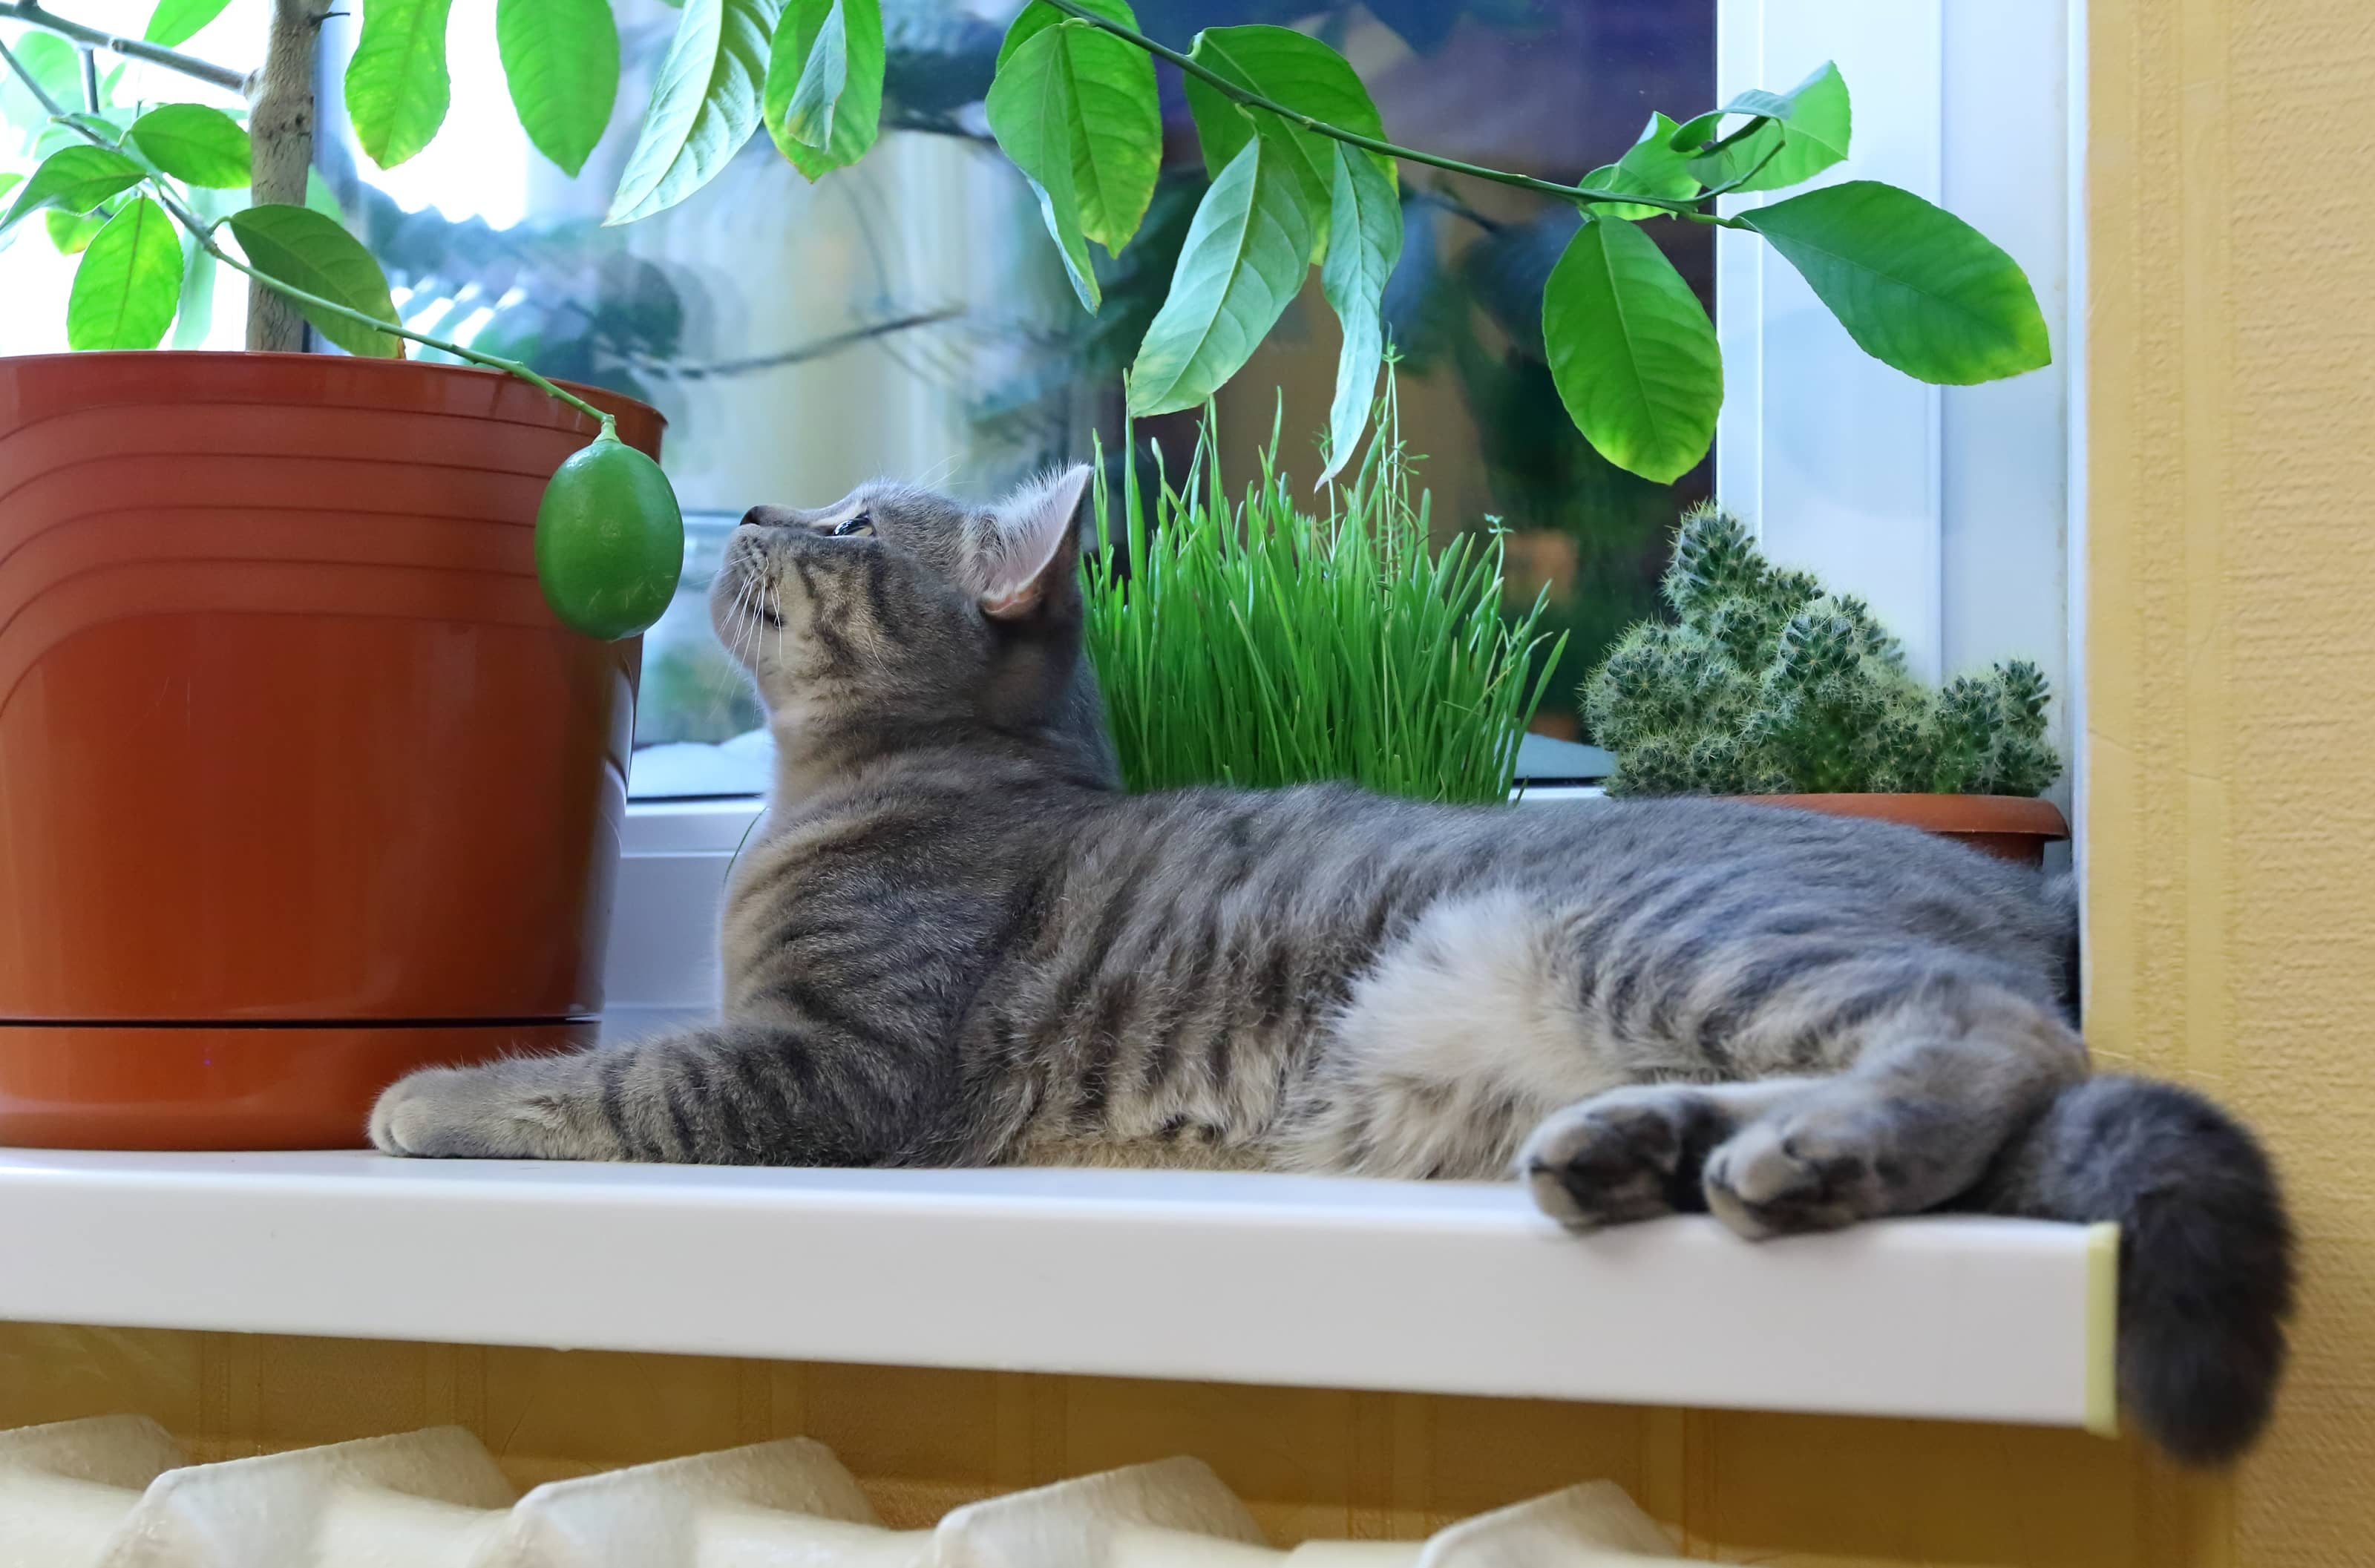 cat sitting on a windowsill next to houseplants